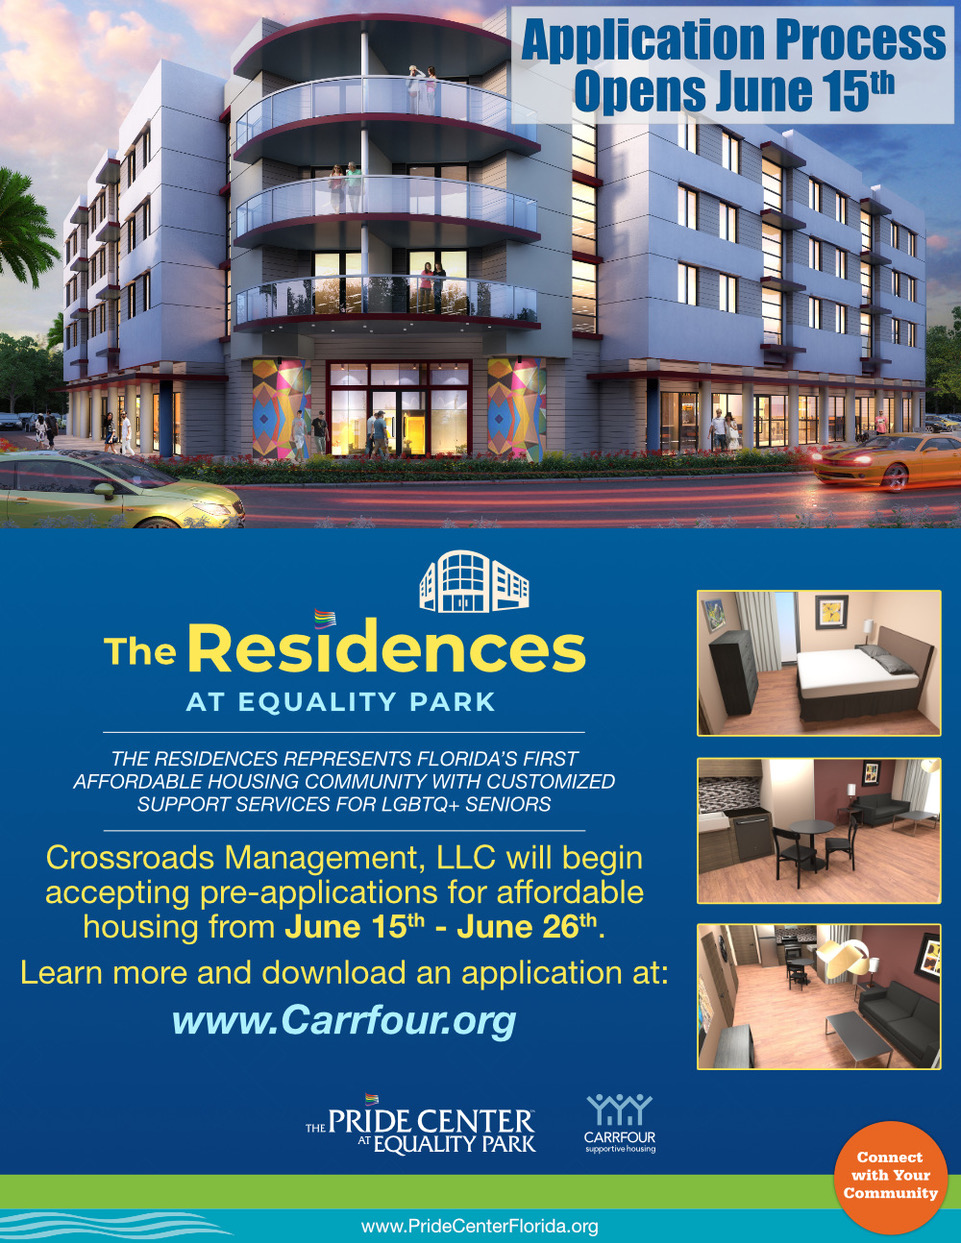 Application process for The Residences at Equality Park